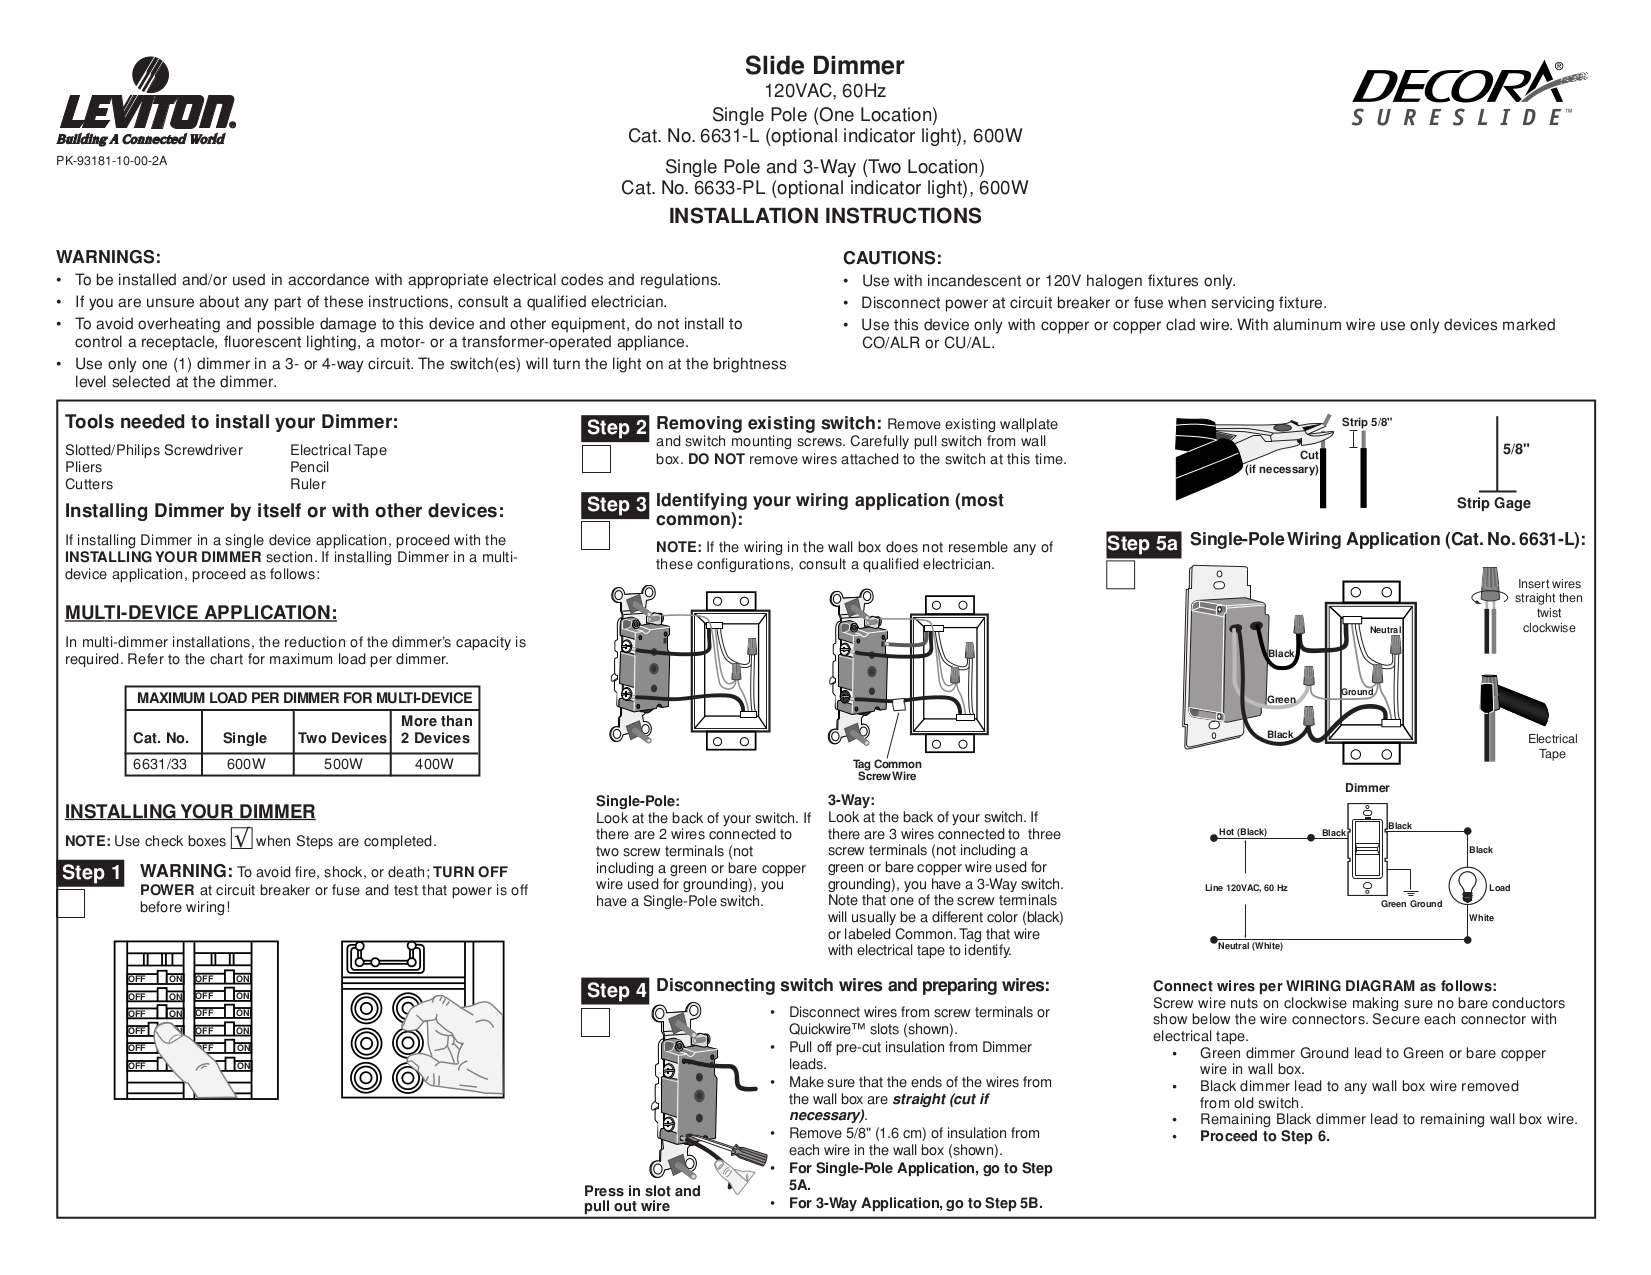 pdf 0 download free pdf for leviton sureslide 6631 l dimmers other manual on leviton sureslide 6633 p wiring diagram